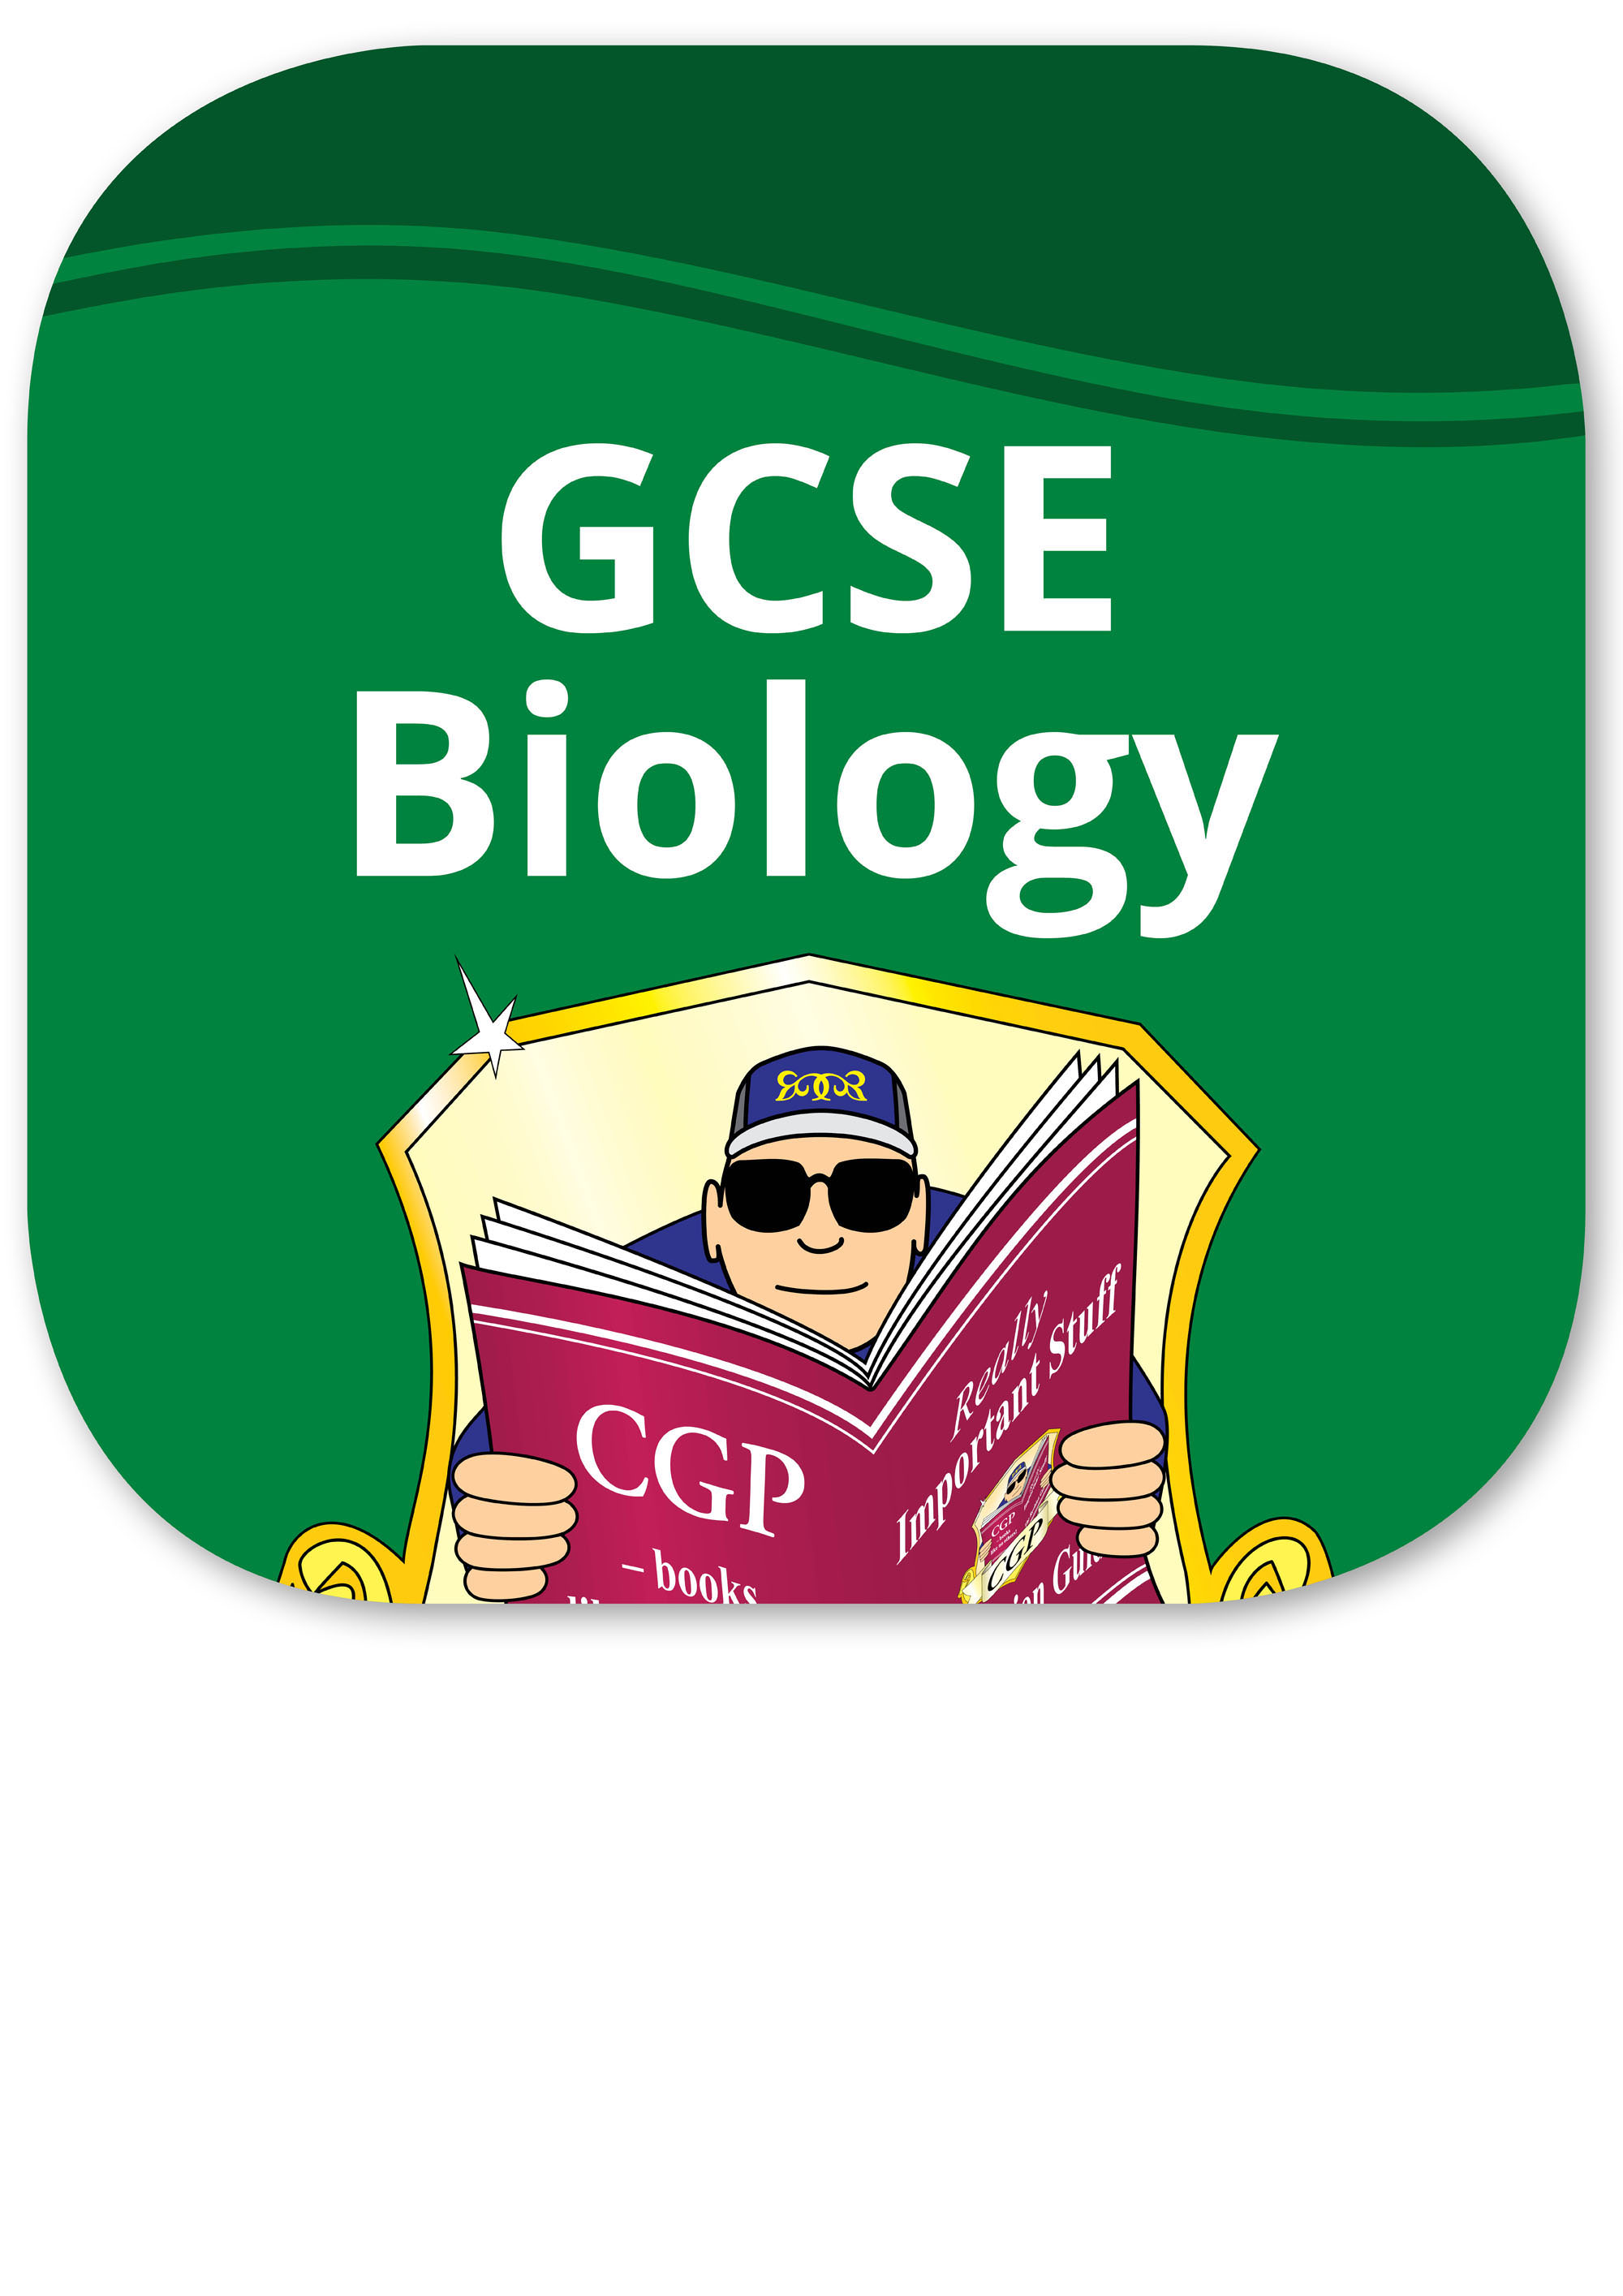 BAIT41 - New App: GCSE Biology AQA Revision - for iOS